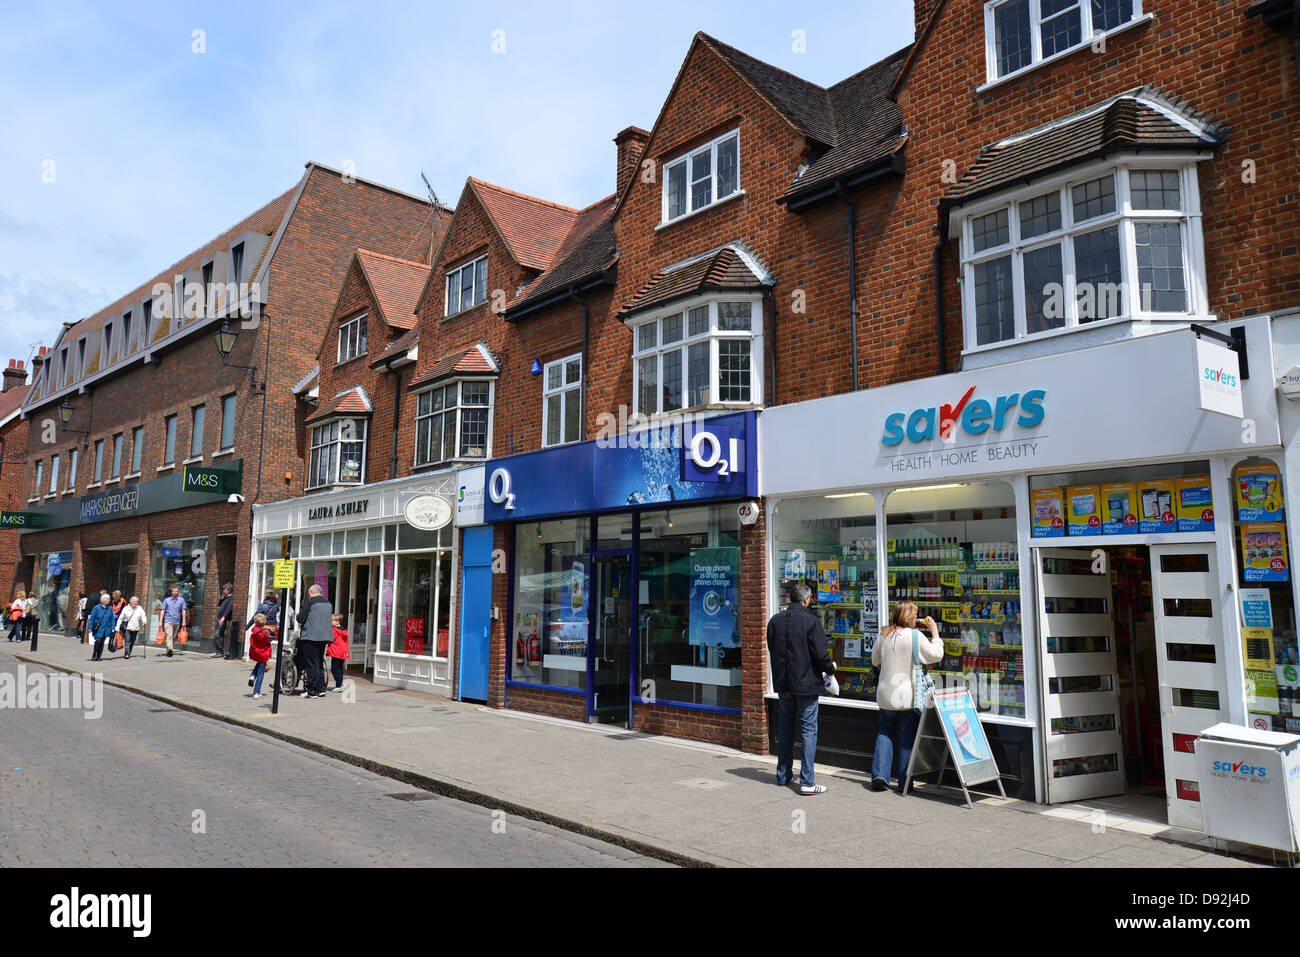 South Street, Bishop's Stortford, Hertfordshire, England, United Kingdom Stock Photo